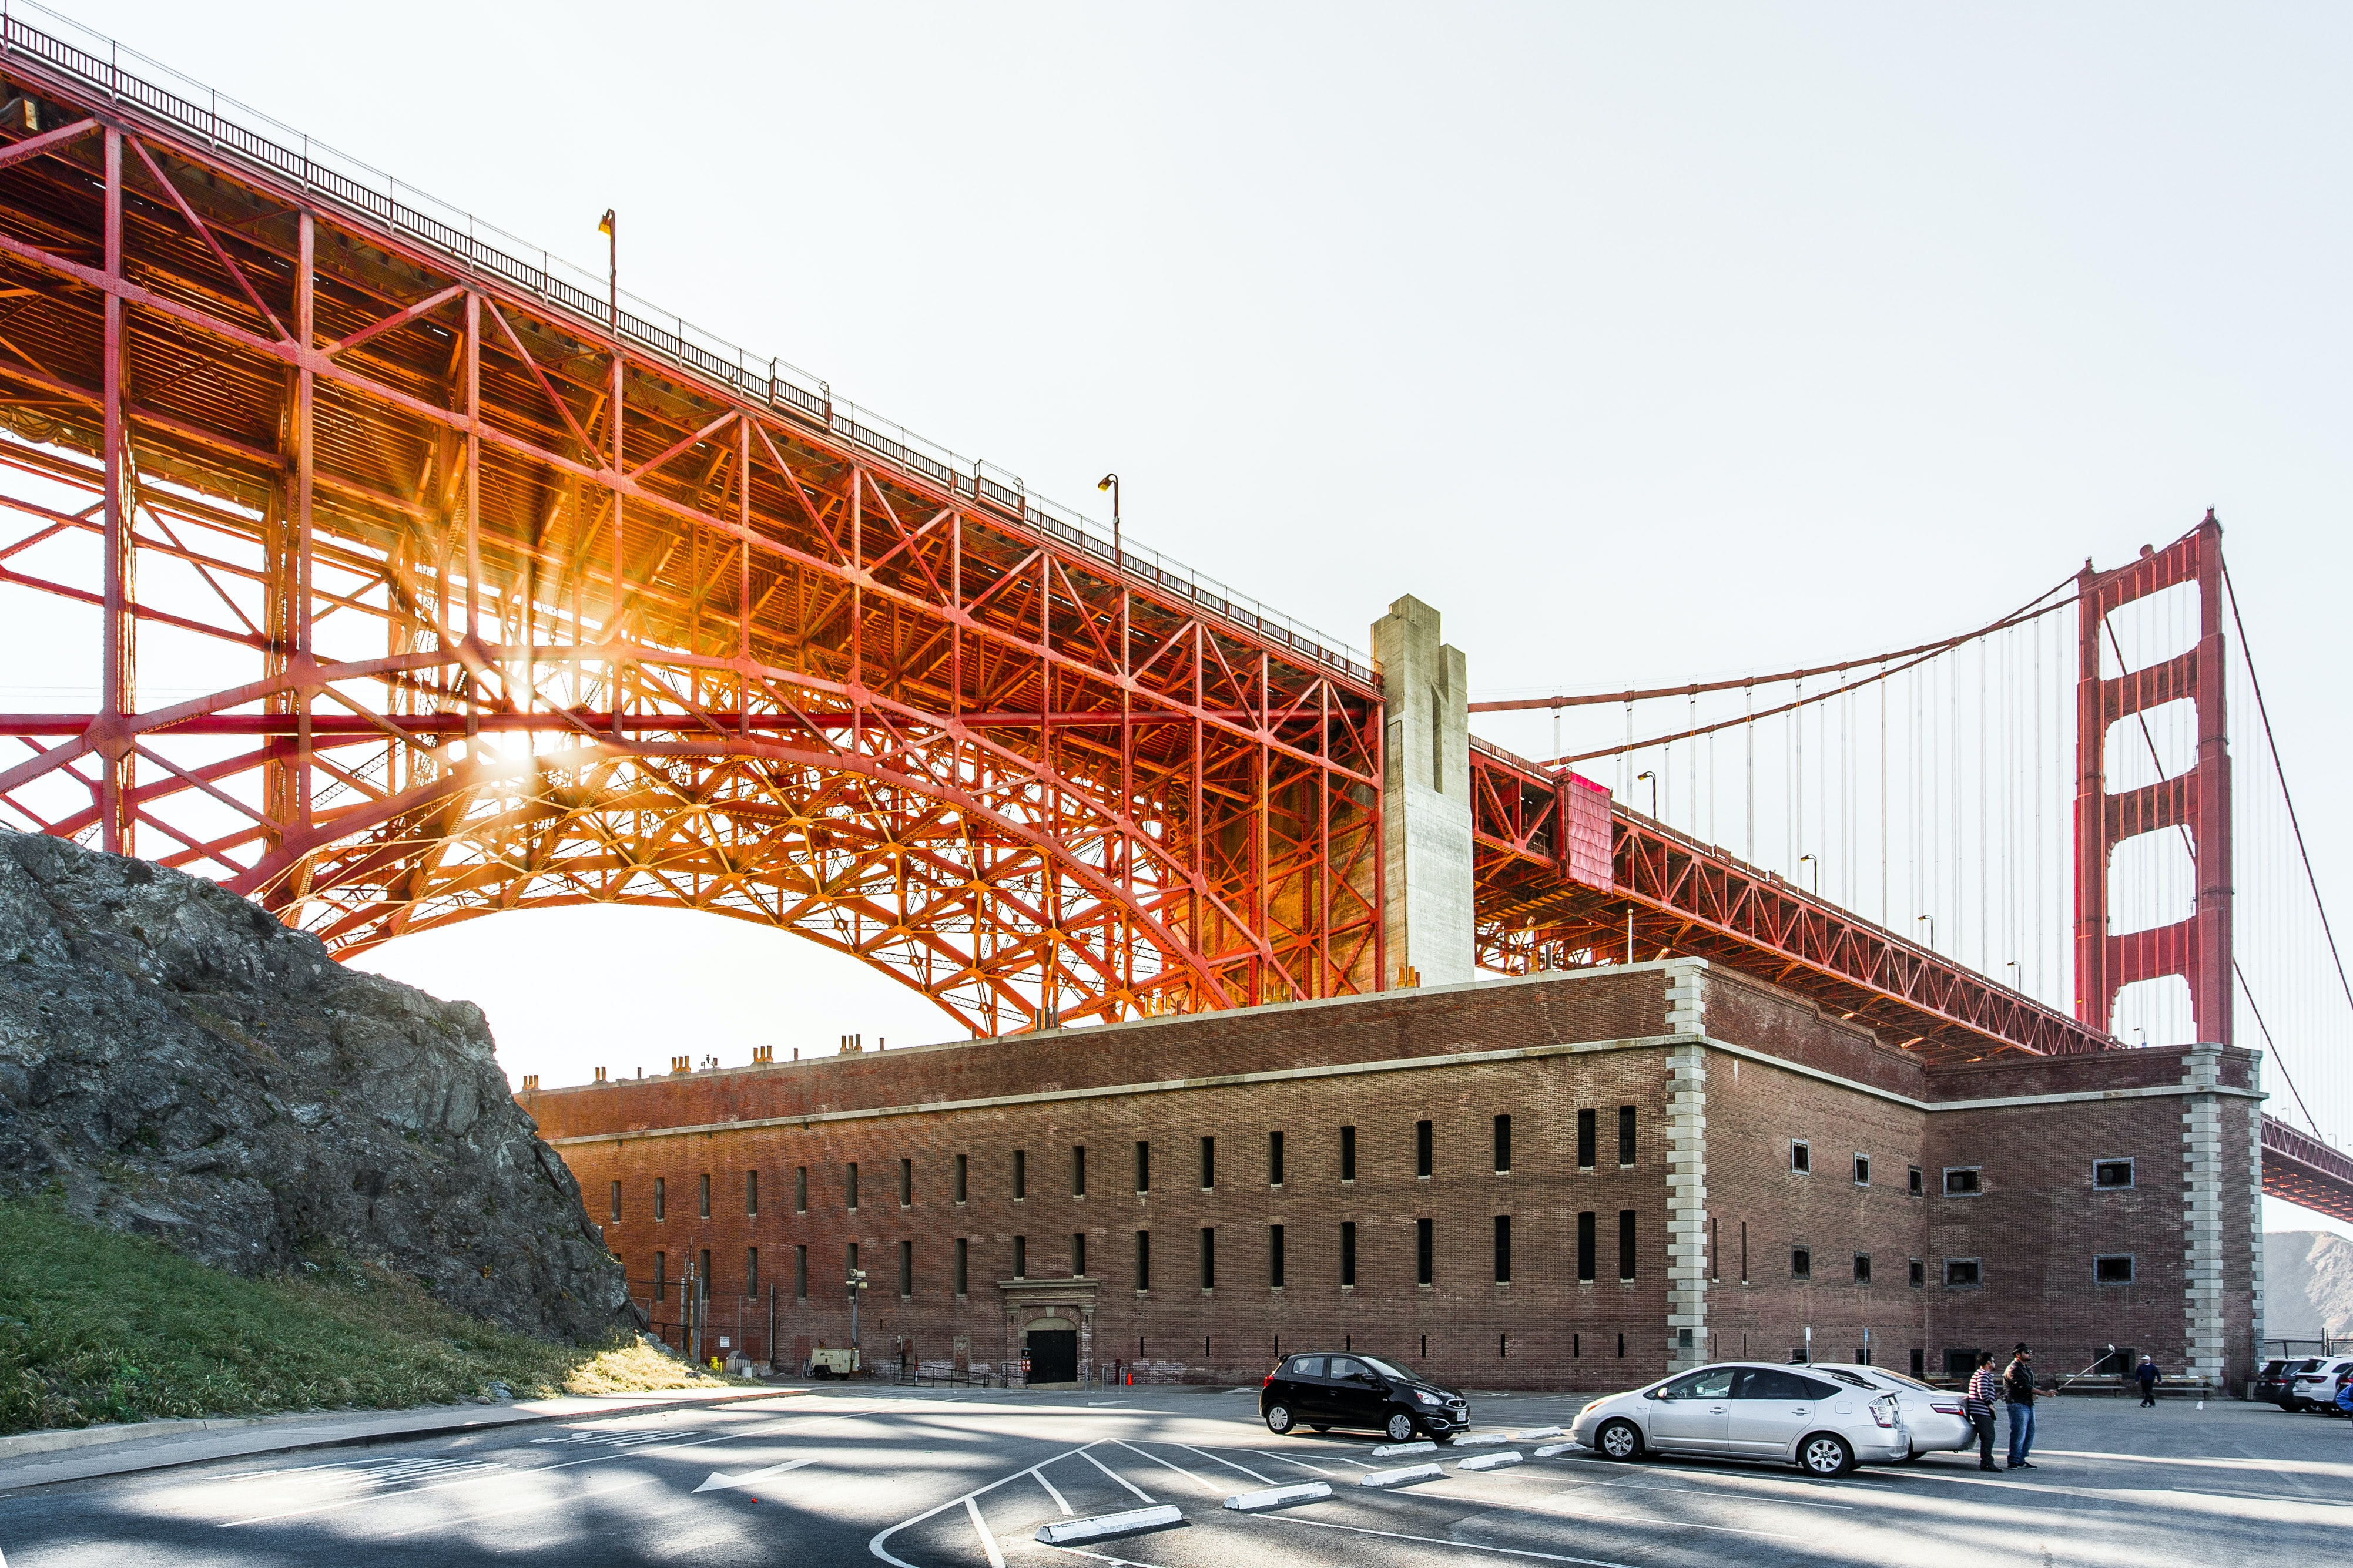 San Francisco Golden Gate Bridge at sunset suspended over a brown building, cars and people